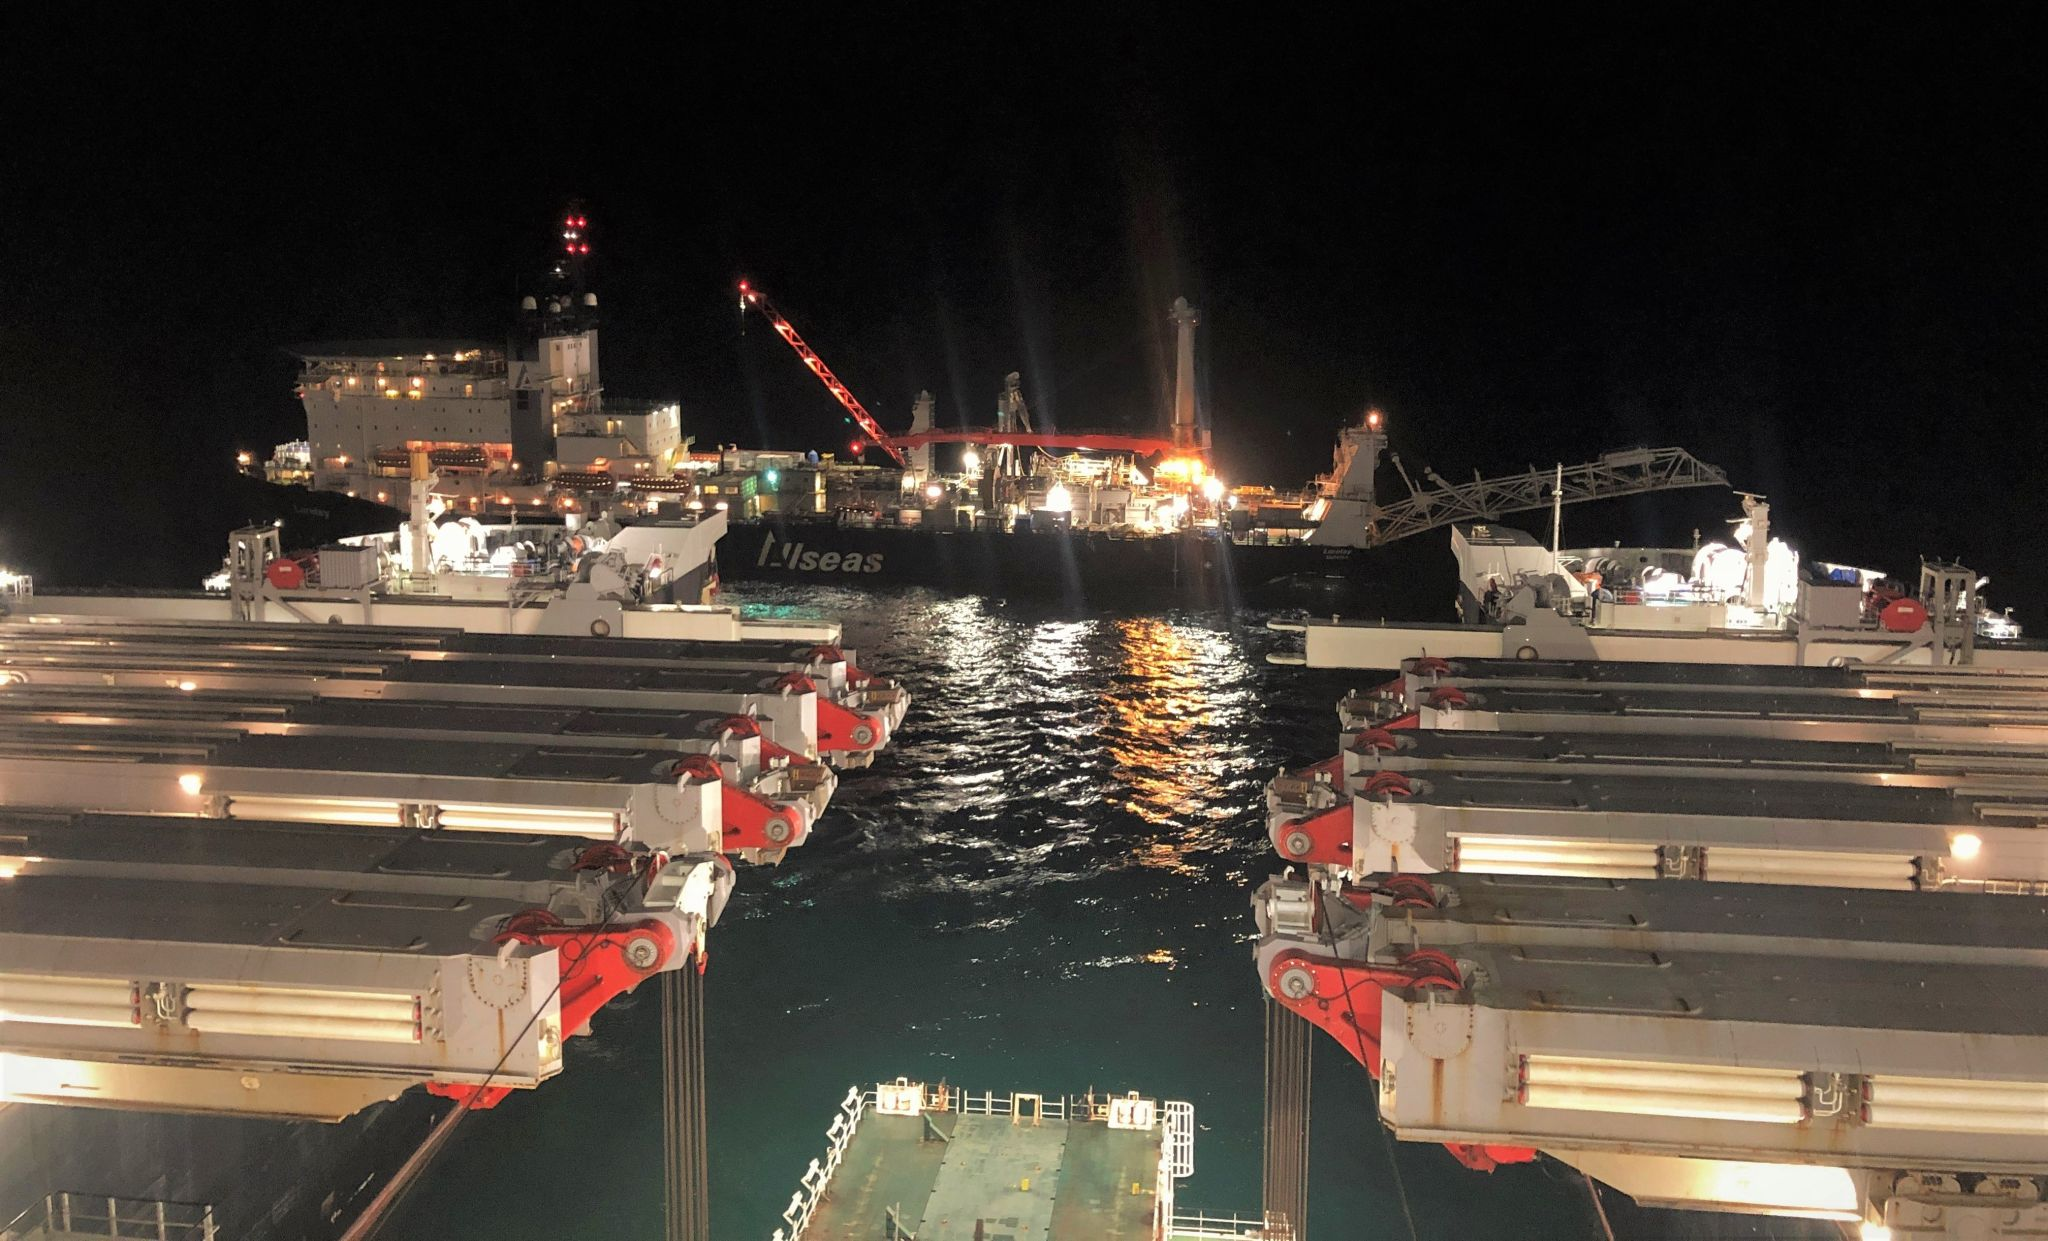 Pioneering Spirit lays over five kilometres of Baltic gas pipeline a day